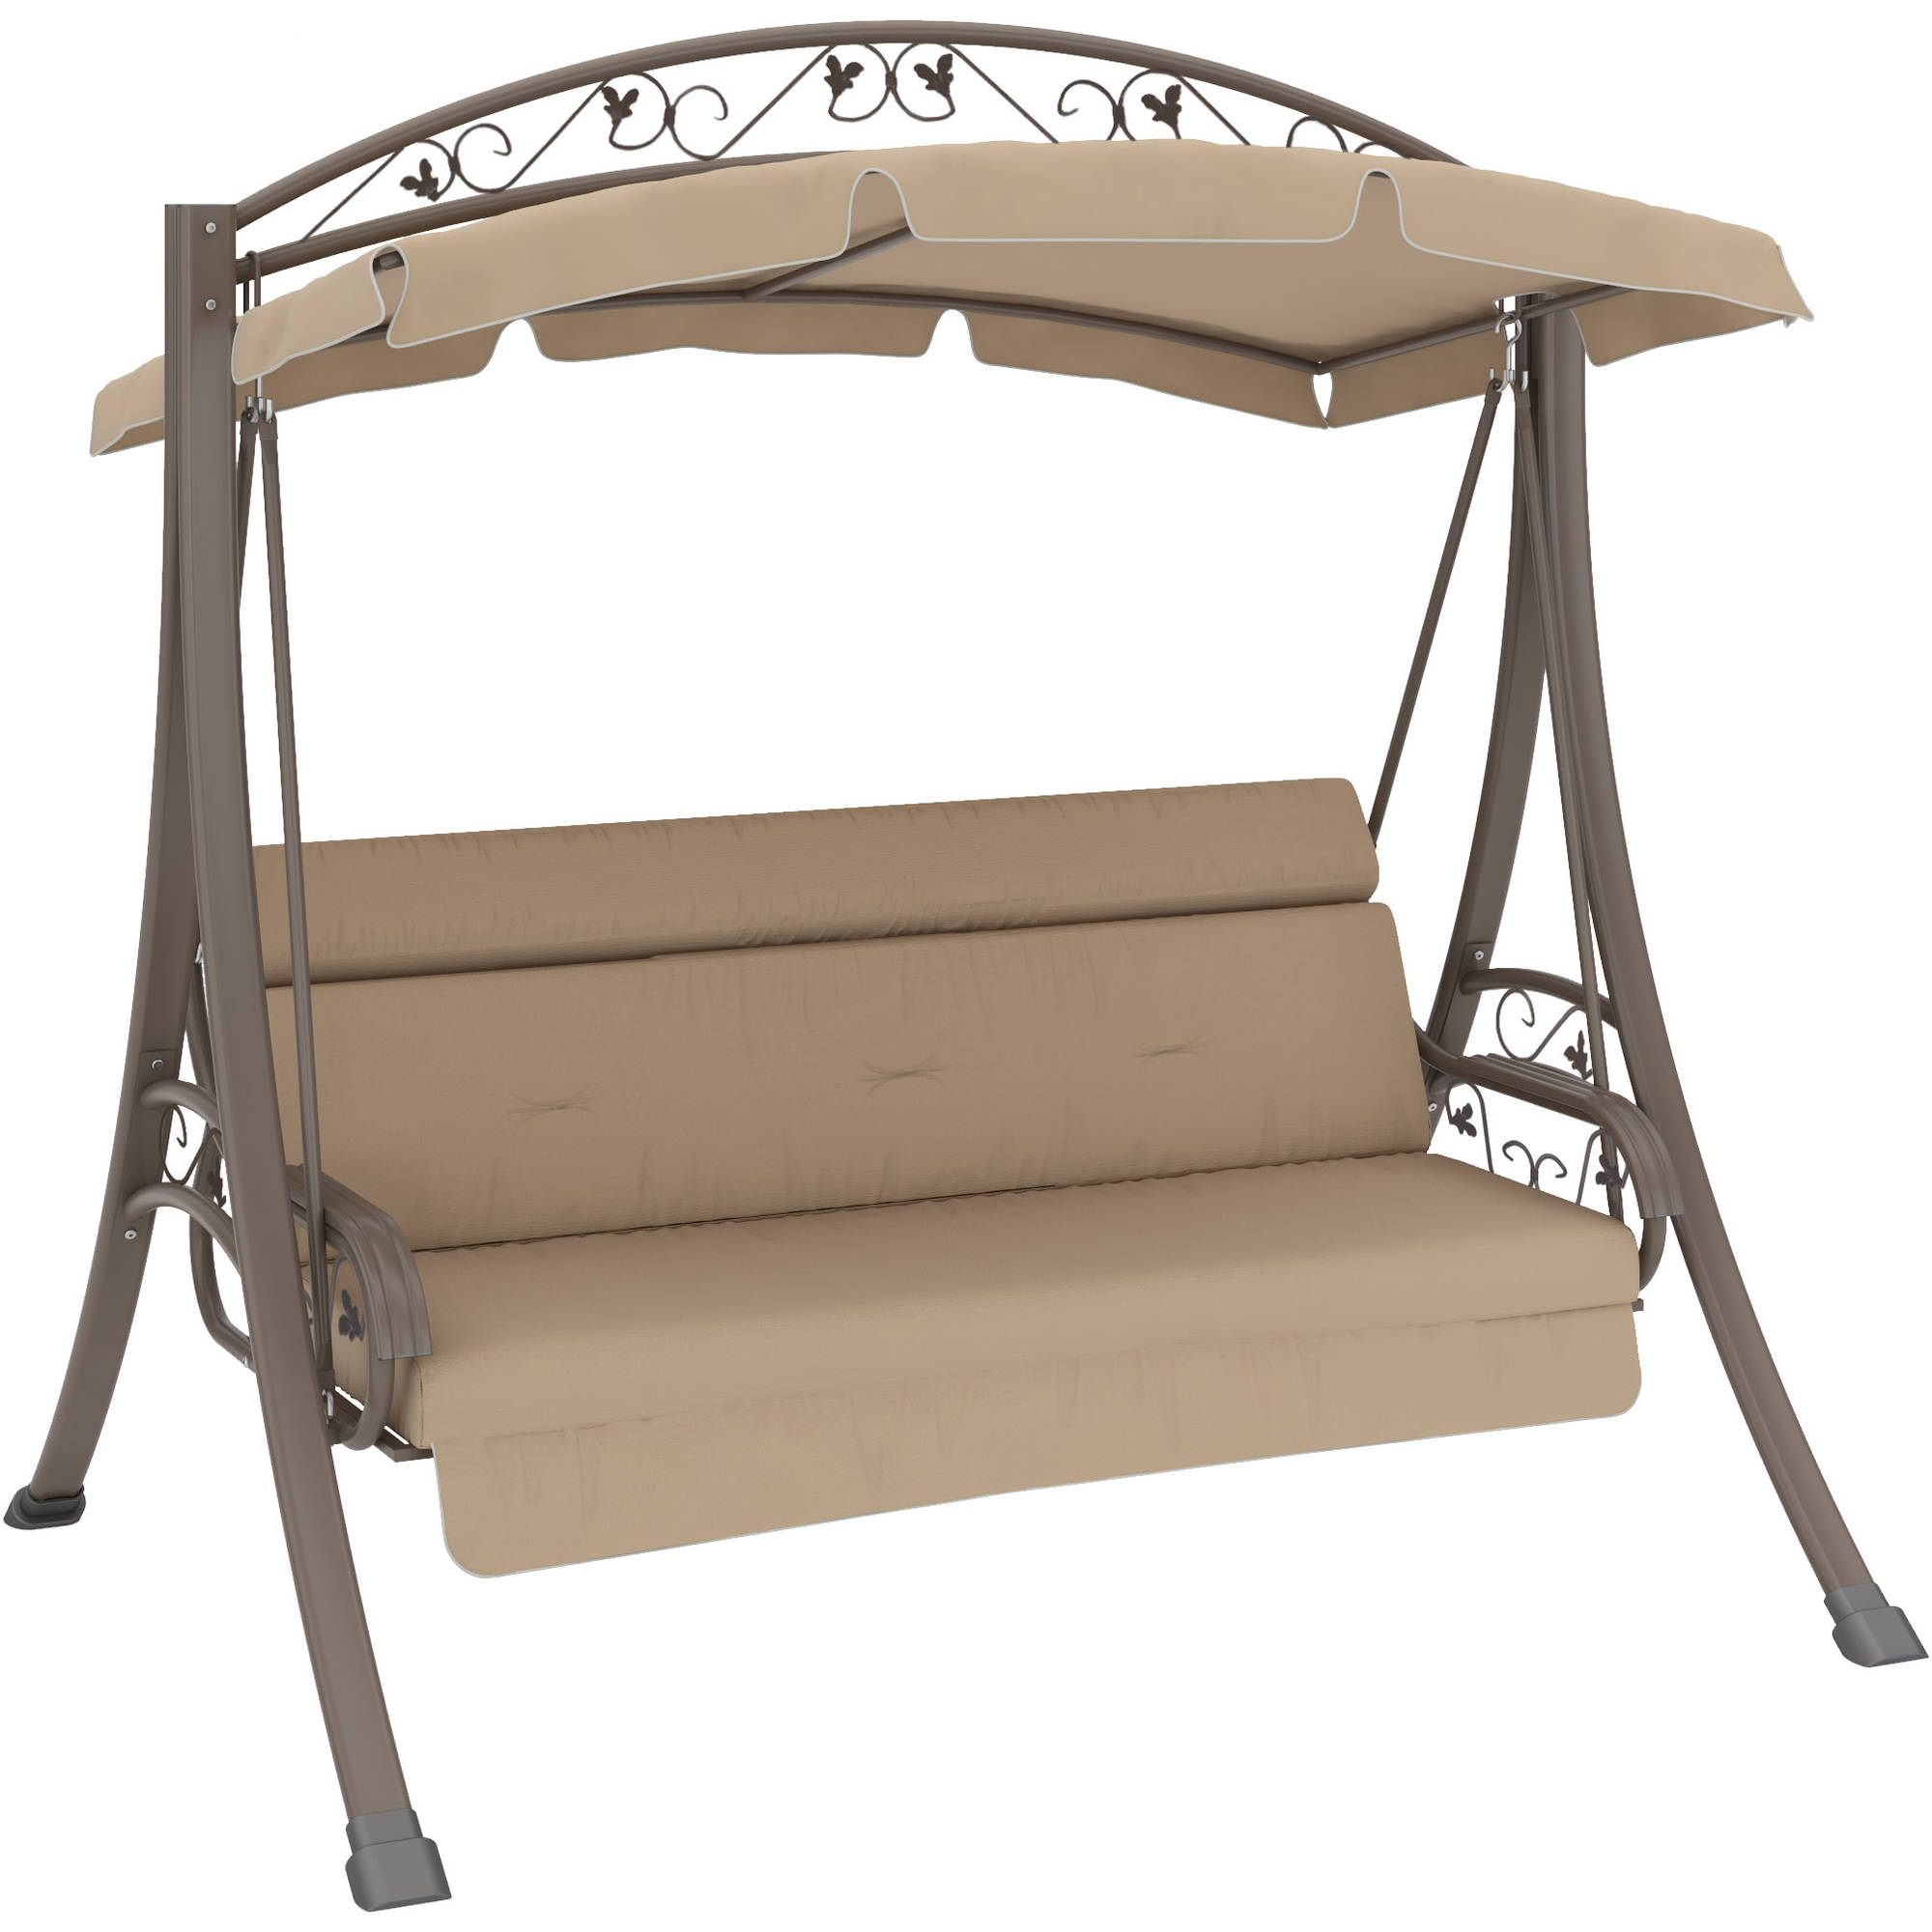 CorLiving Nantucket Patio Swing With Arched Canopy Beige